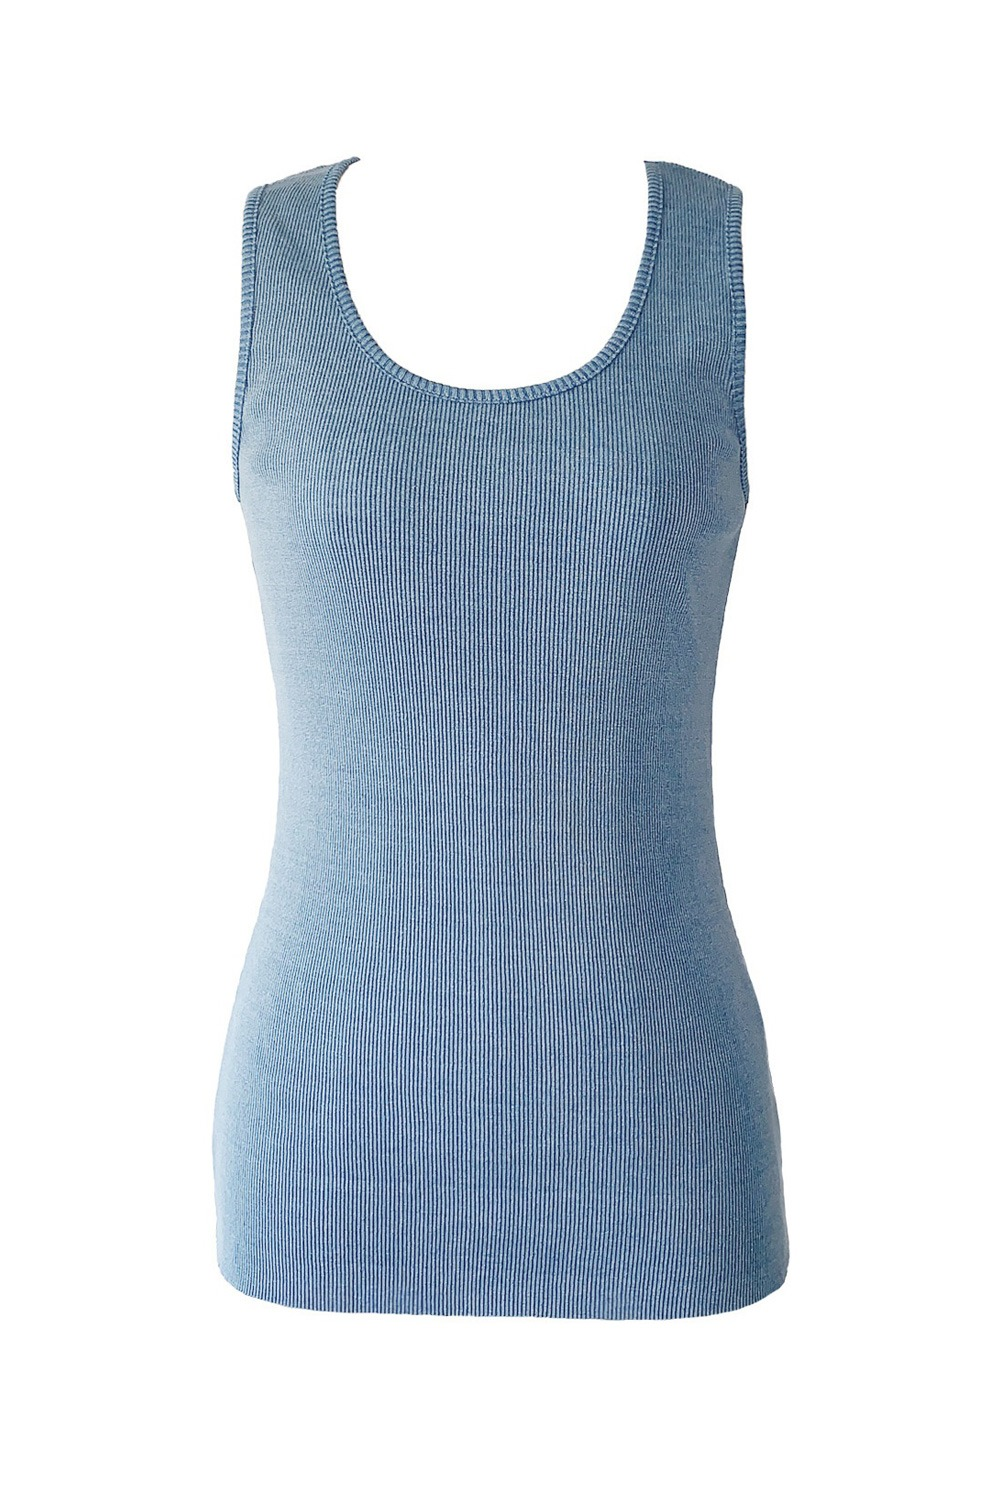 DENIM KNIT TANK TOP